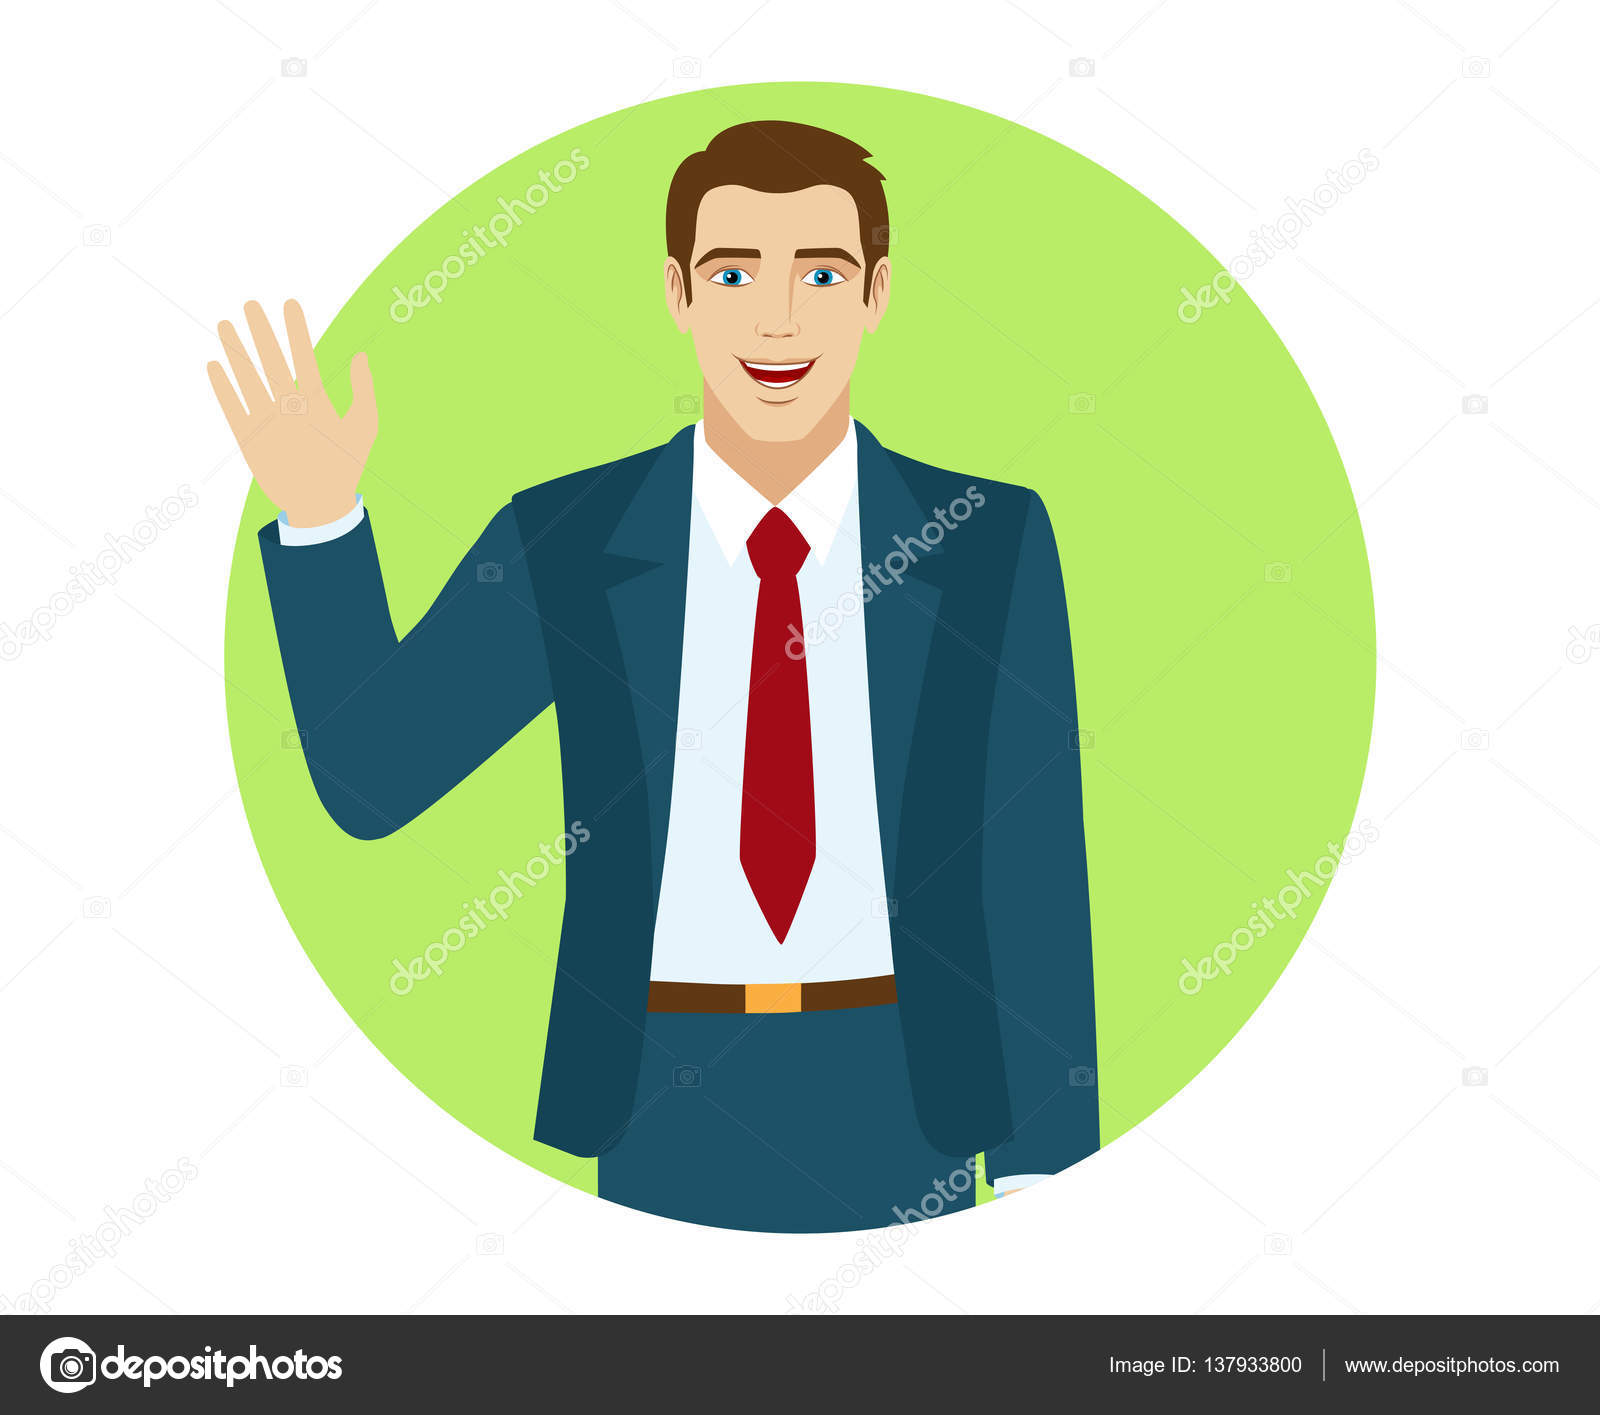 Businessman greeting someone stock vector komissar008 137933800 businessman greeting someone with his hand raised up portrait of businessman in a flat style vector illustration vector by komissar008 m4hsunfo